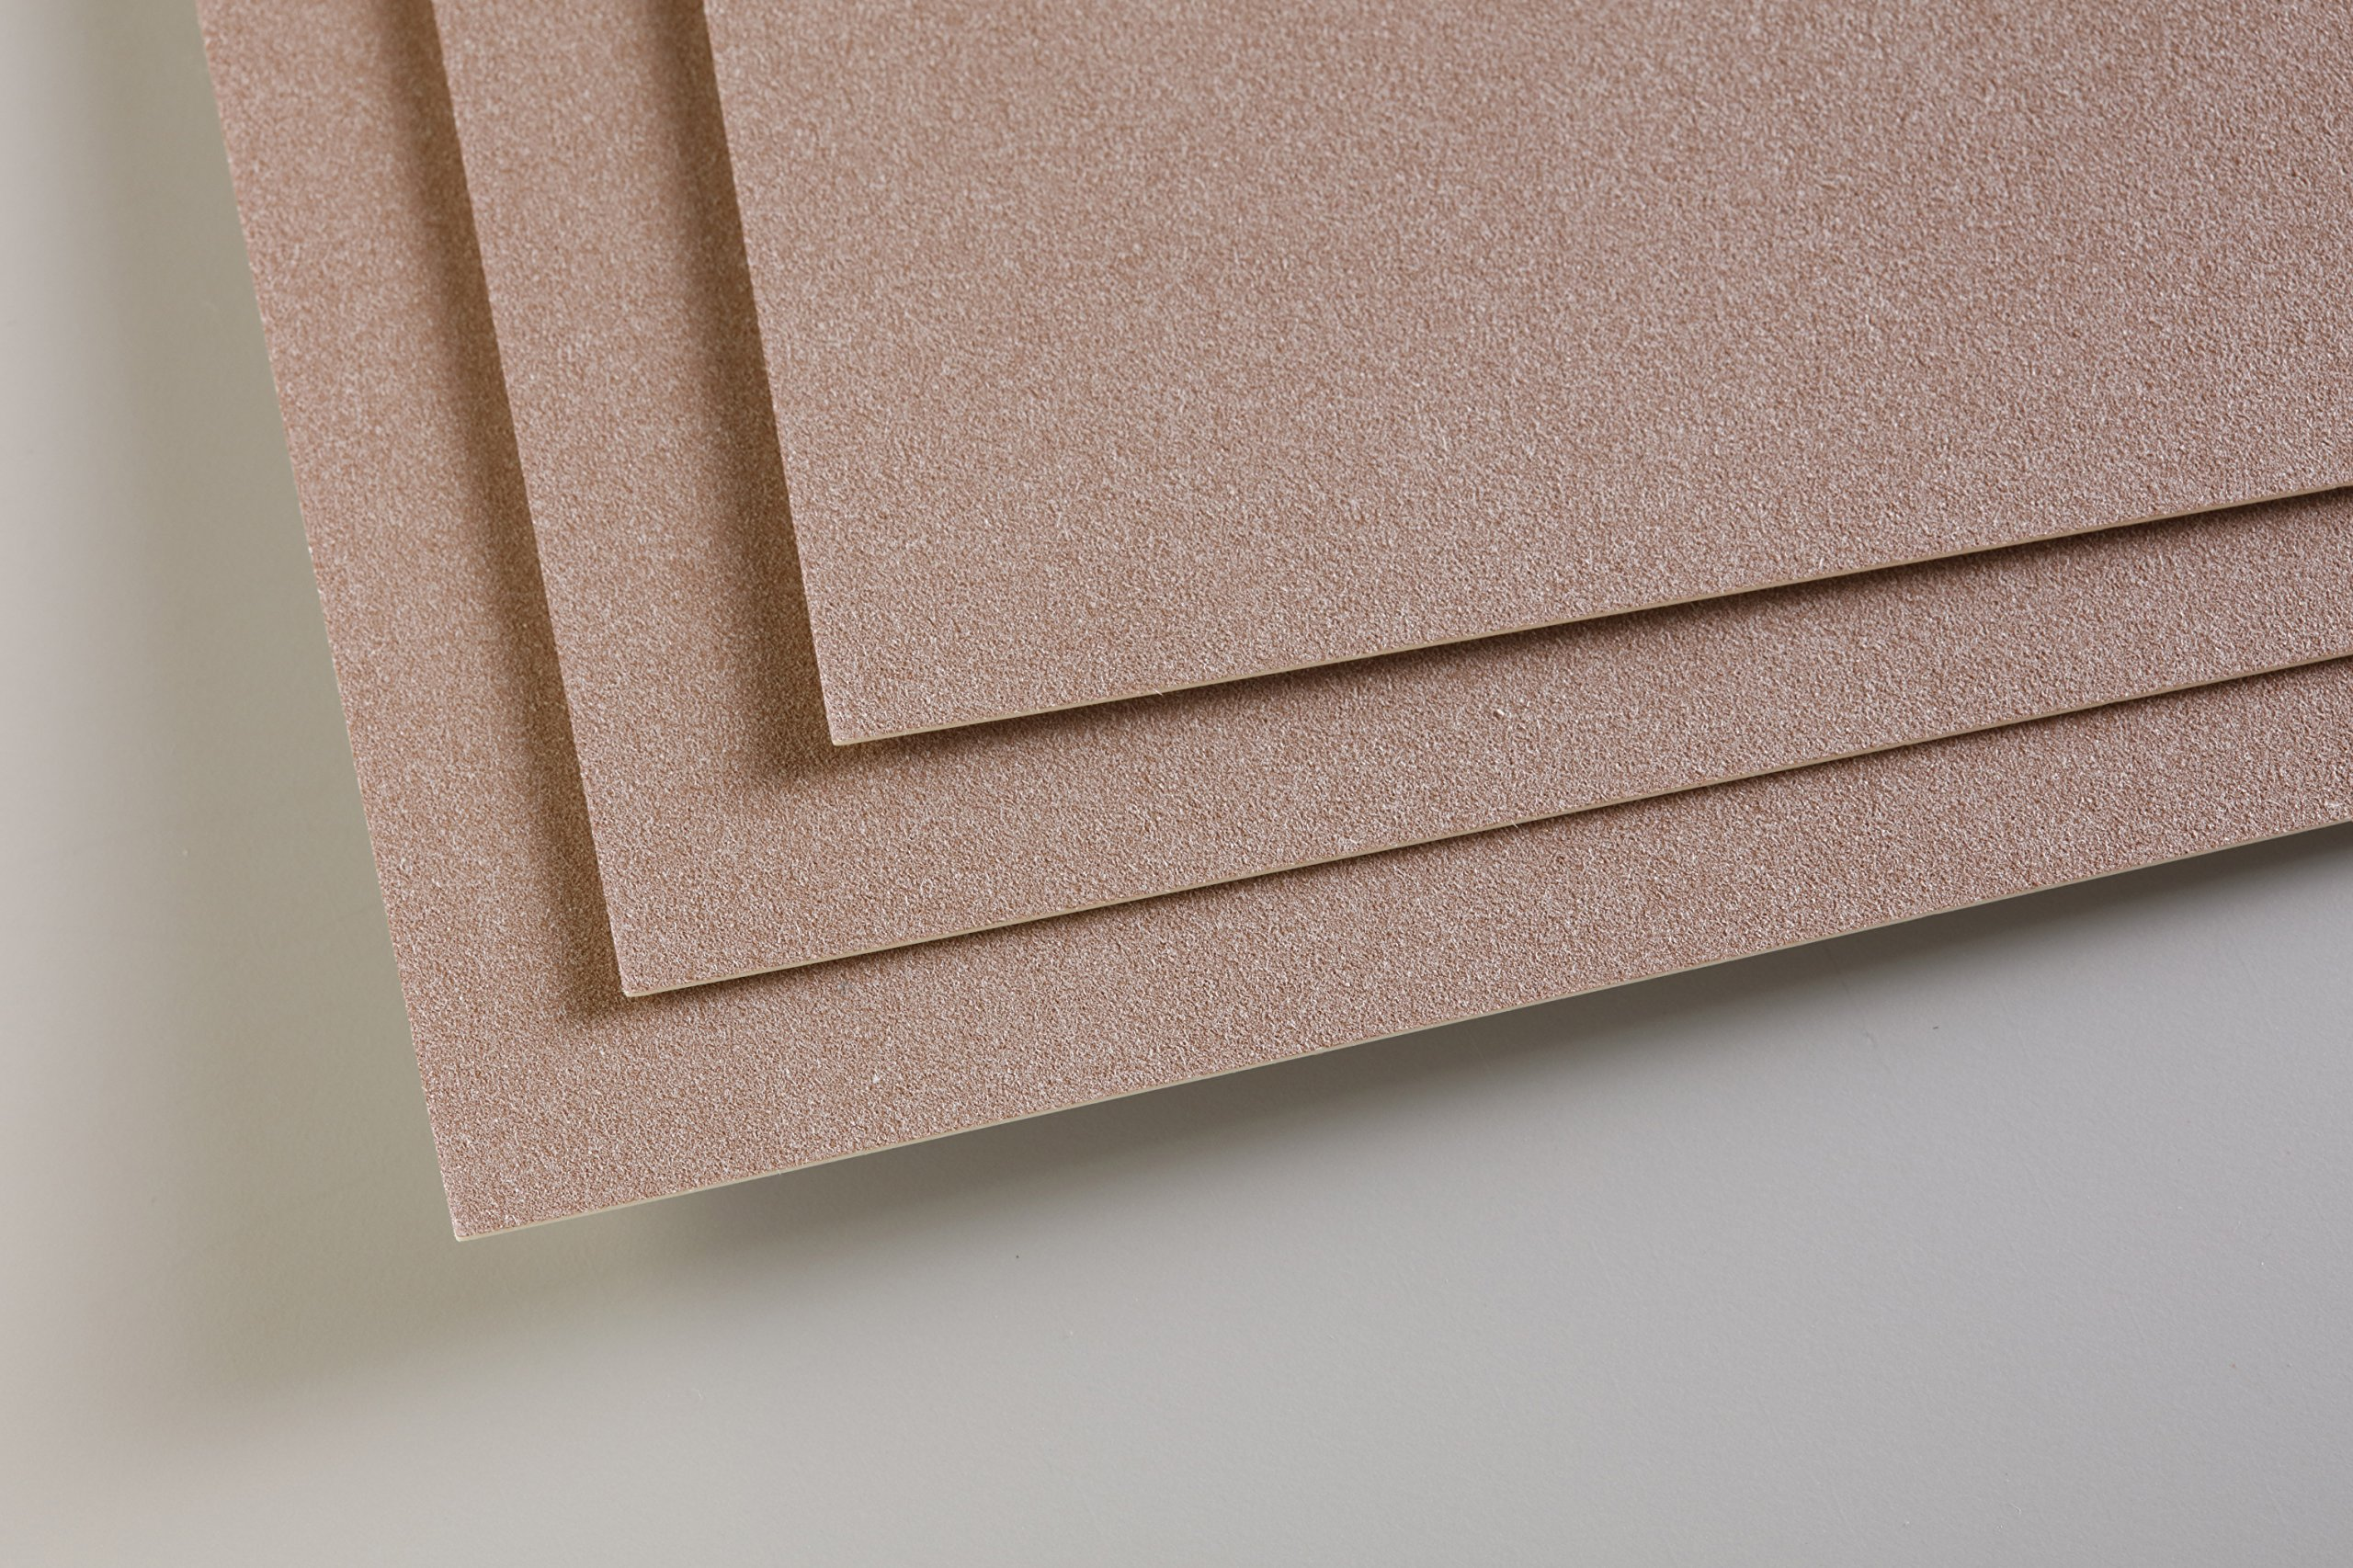 Pastelmat Card for Pastel - 19.5 x 27.5 Inch Sheet - Brown Single Sheet by Clairefontaine